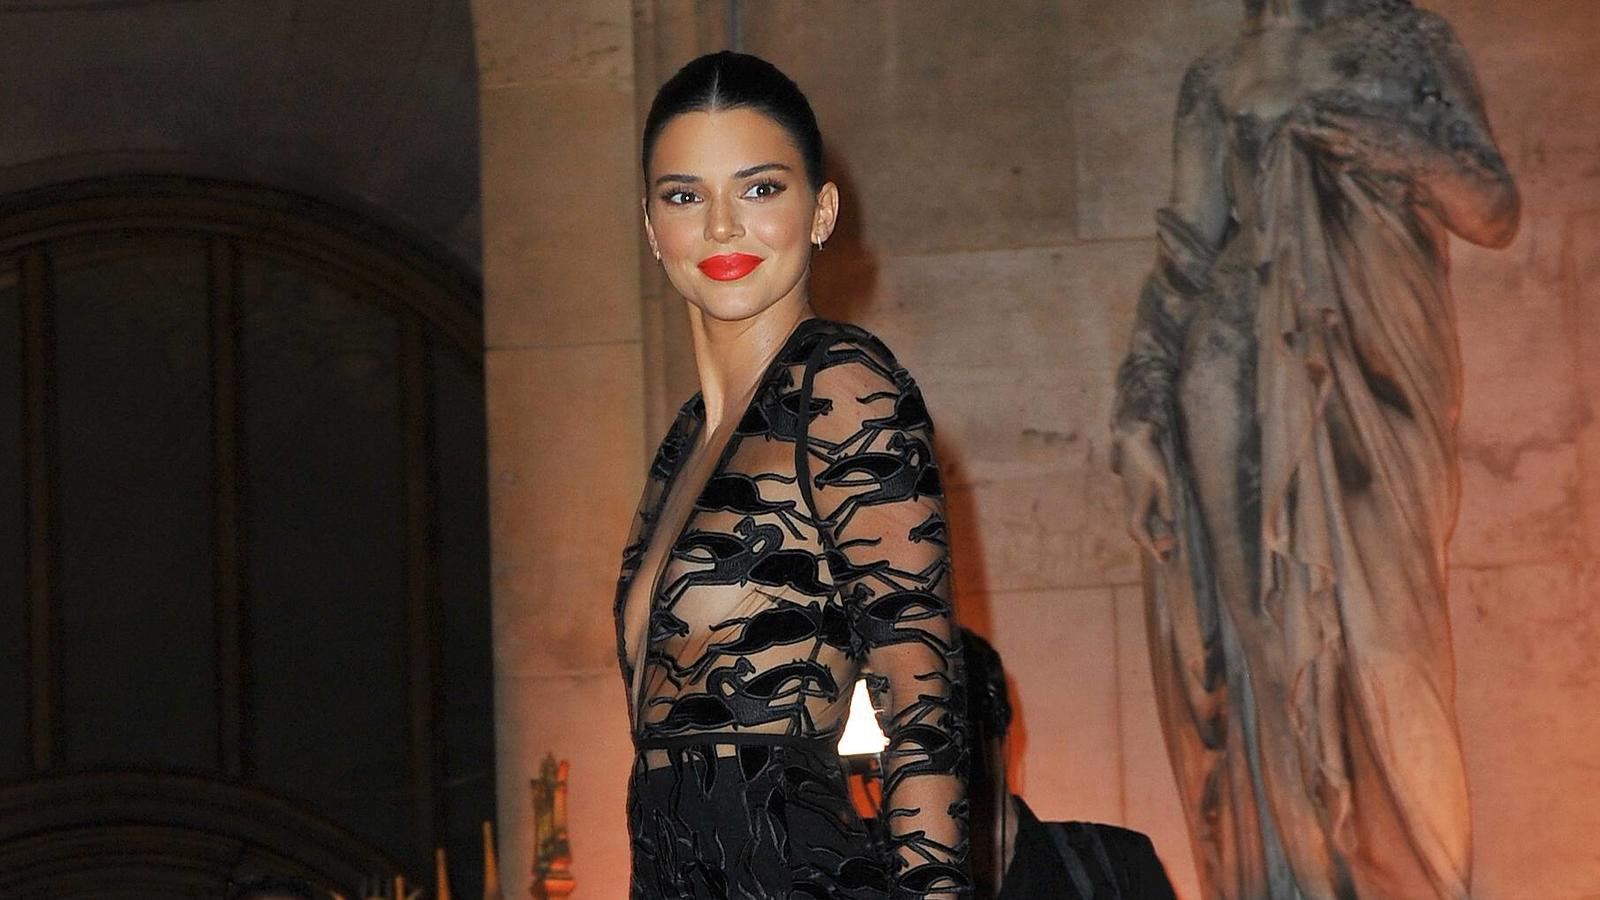 Kendall Jenner arrives at the 70th anniversary of Longchamp party at Opera Garnier in Paris, France, on September 11, 2018. Photo by Favier/E-PRESSPHOTO.COM Kendall Jenner Paris France PUBLICATIONxINxGERxSUIxAUTxONLY 594283